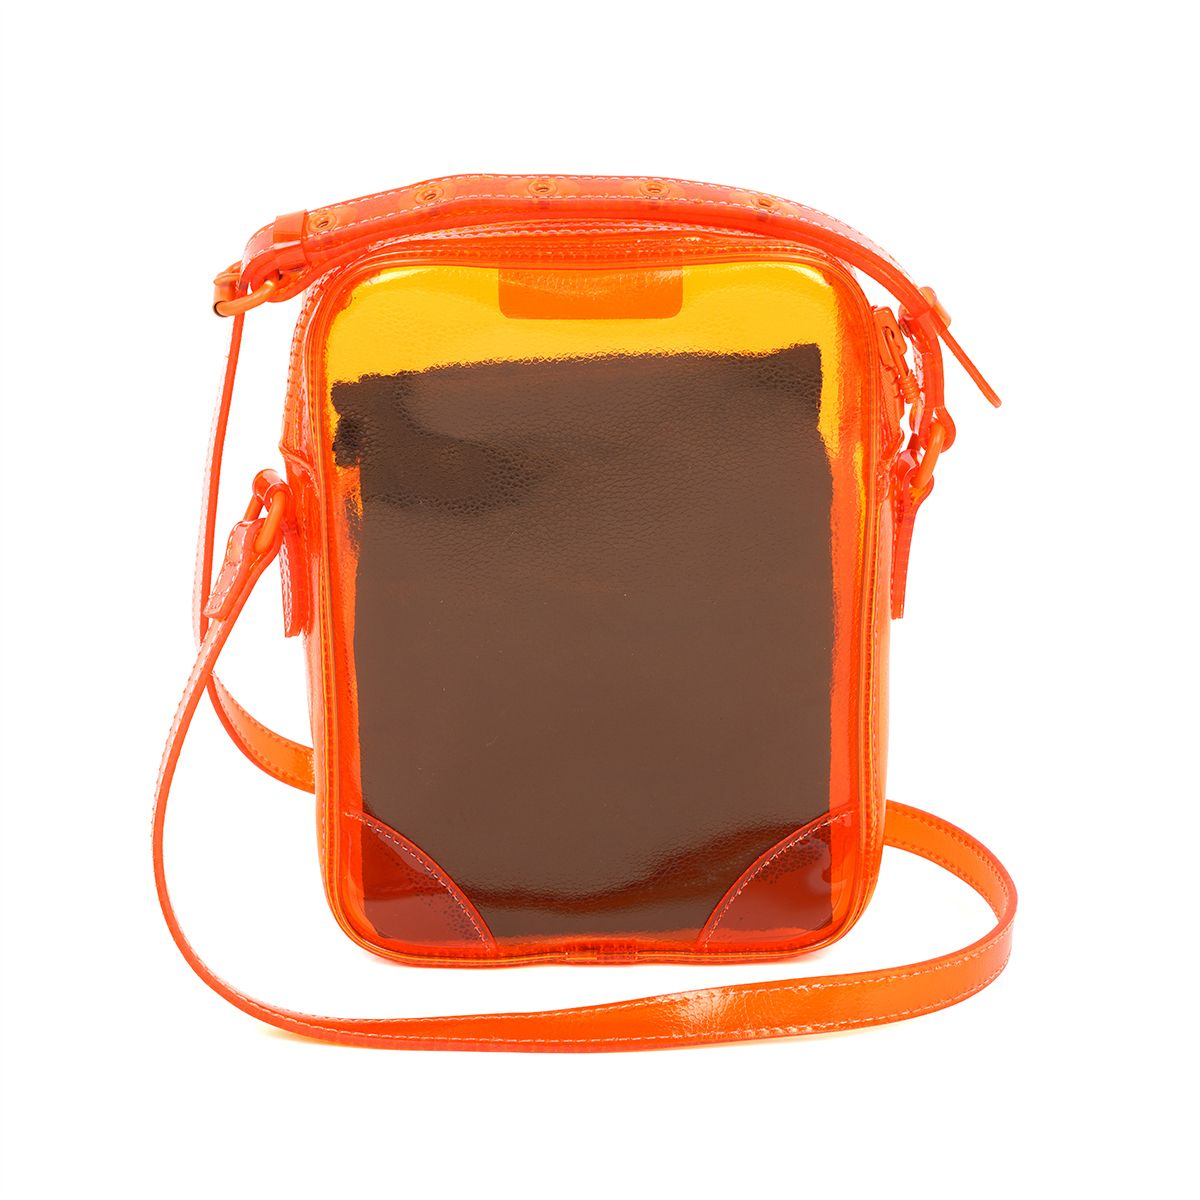 READYMADE SMALL SHOULDER BAG / ORANGE